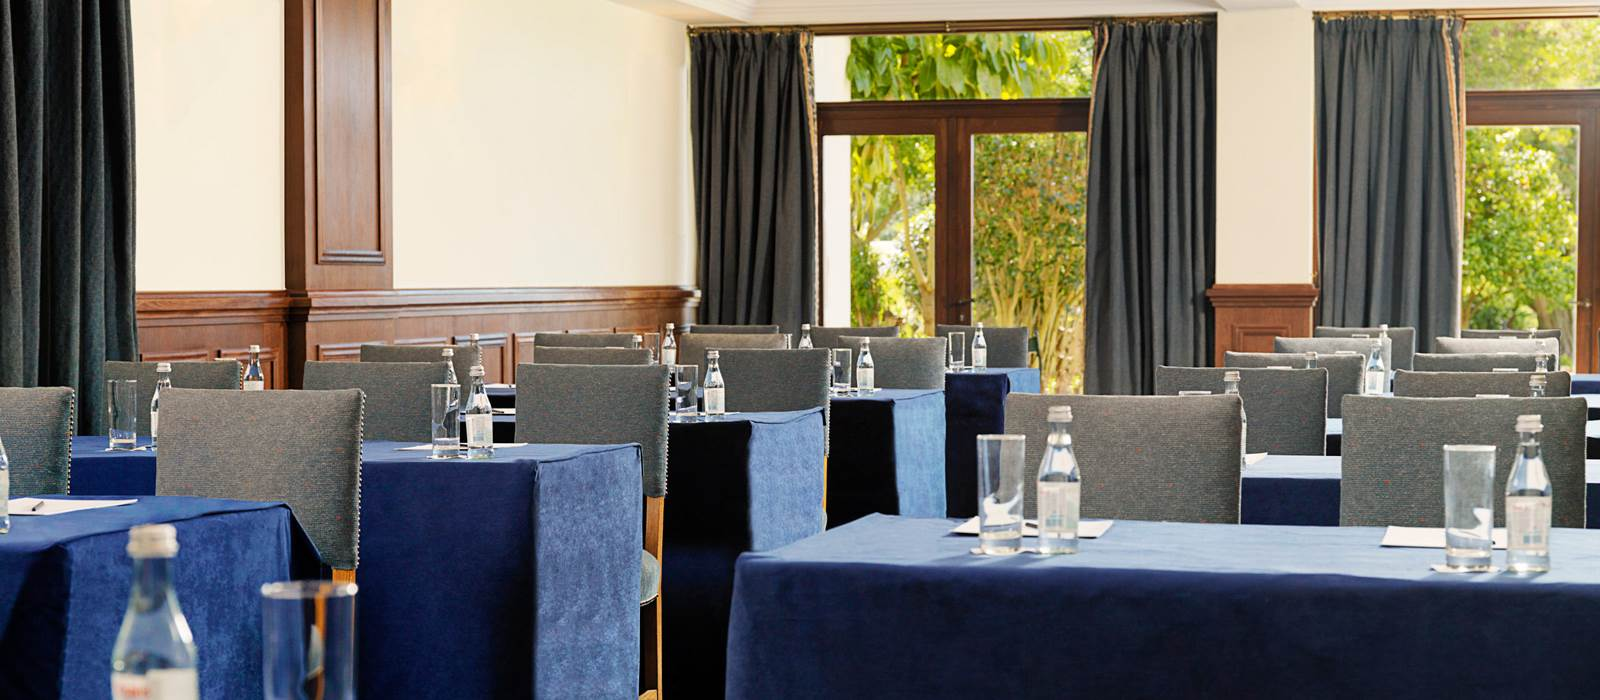 Meeting Room at Penina Hotel and Golf Resort